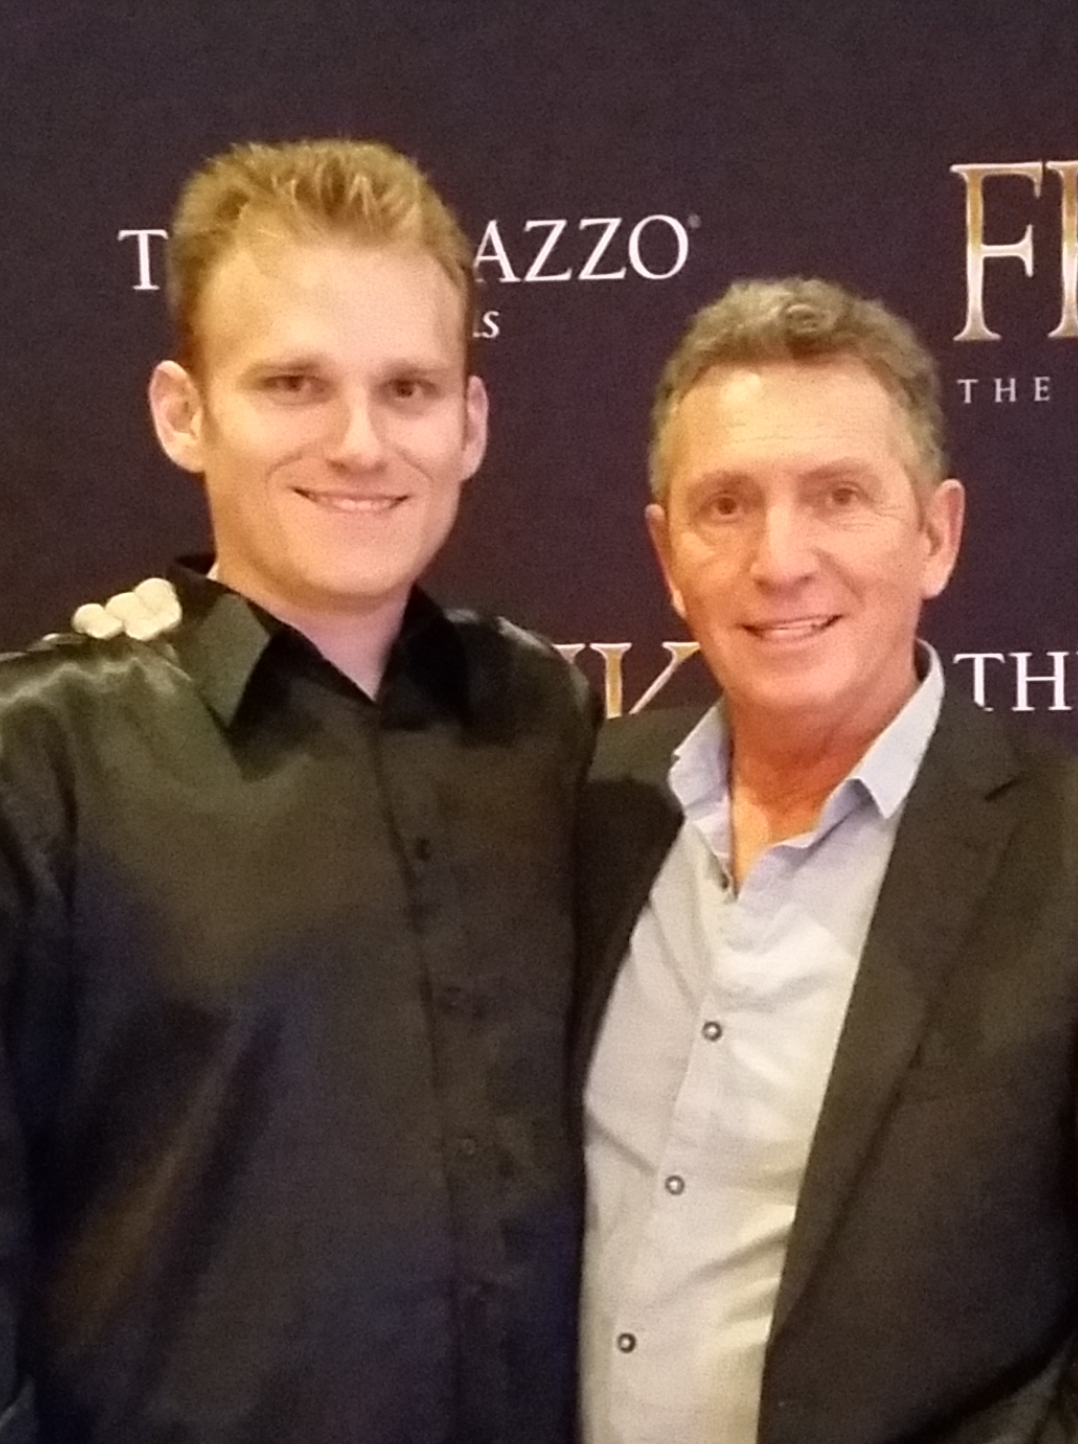 Matt with Las Vegas Hall of Fame Entertainer Bob Anderson